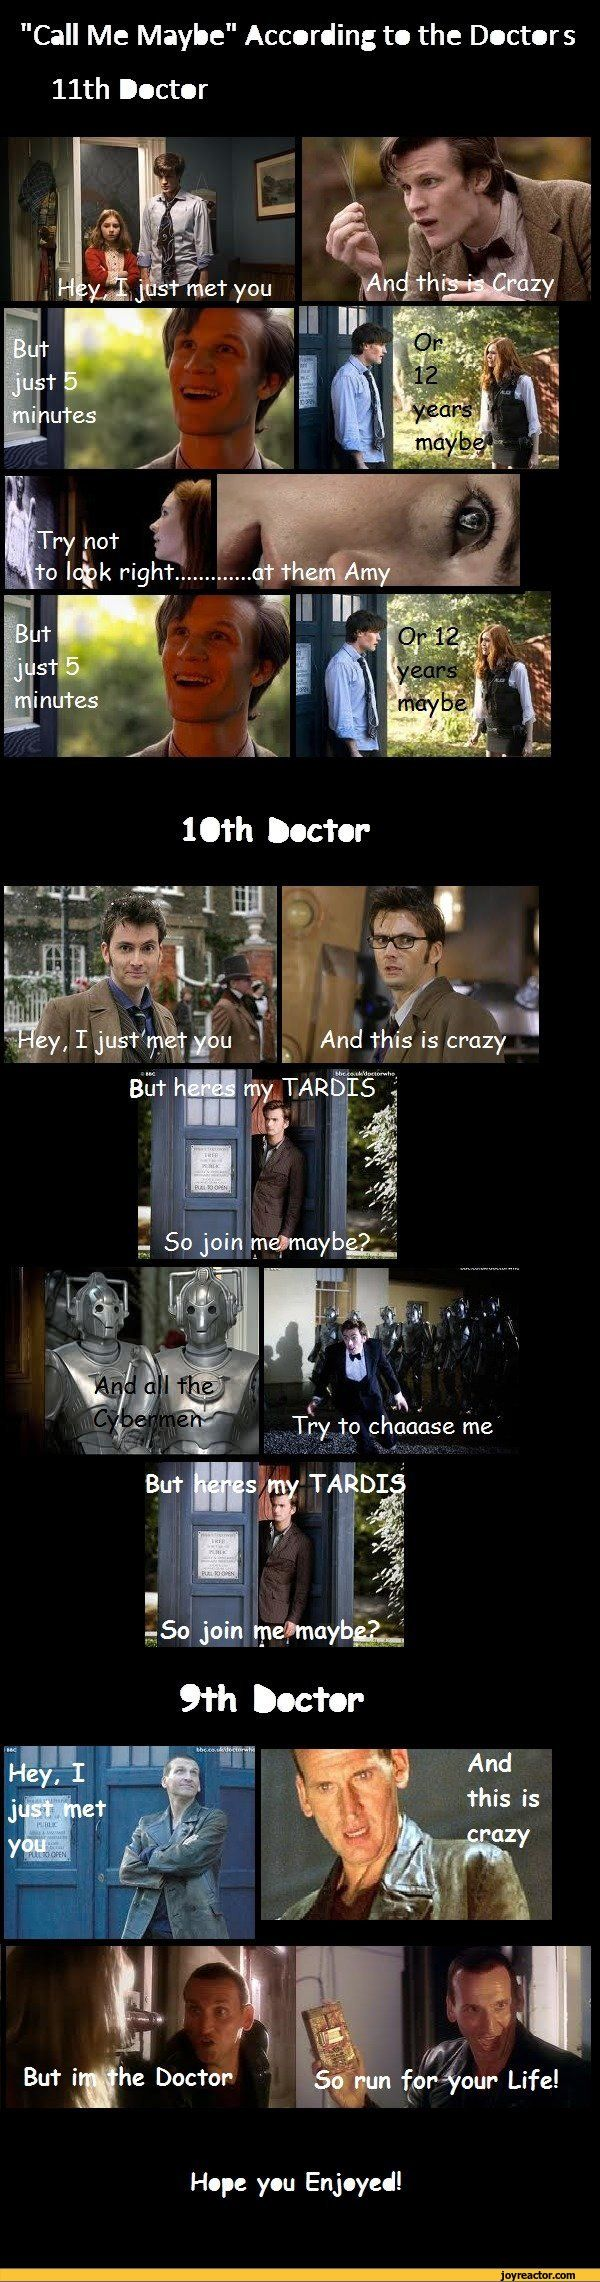 Call Me Maybe doctor who style